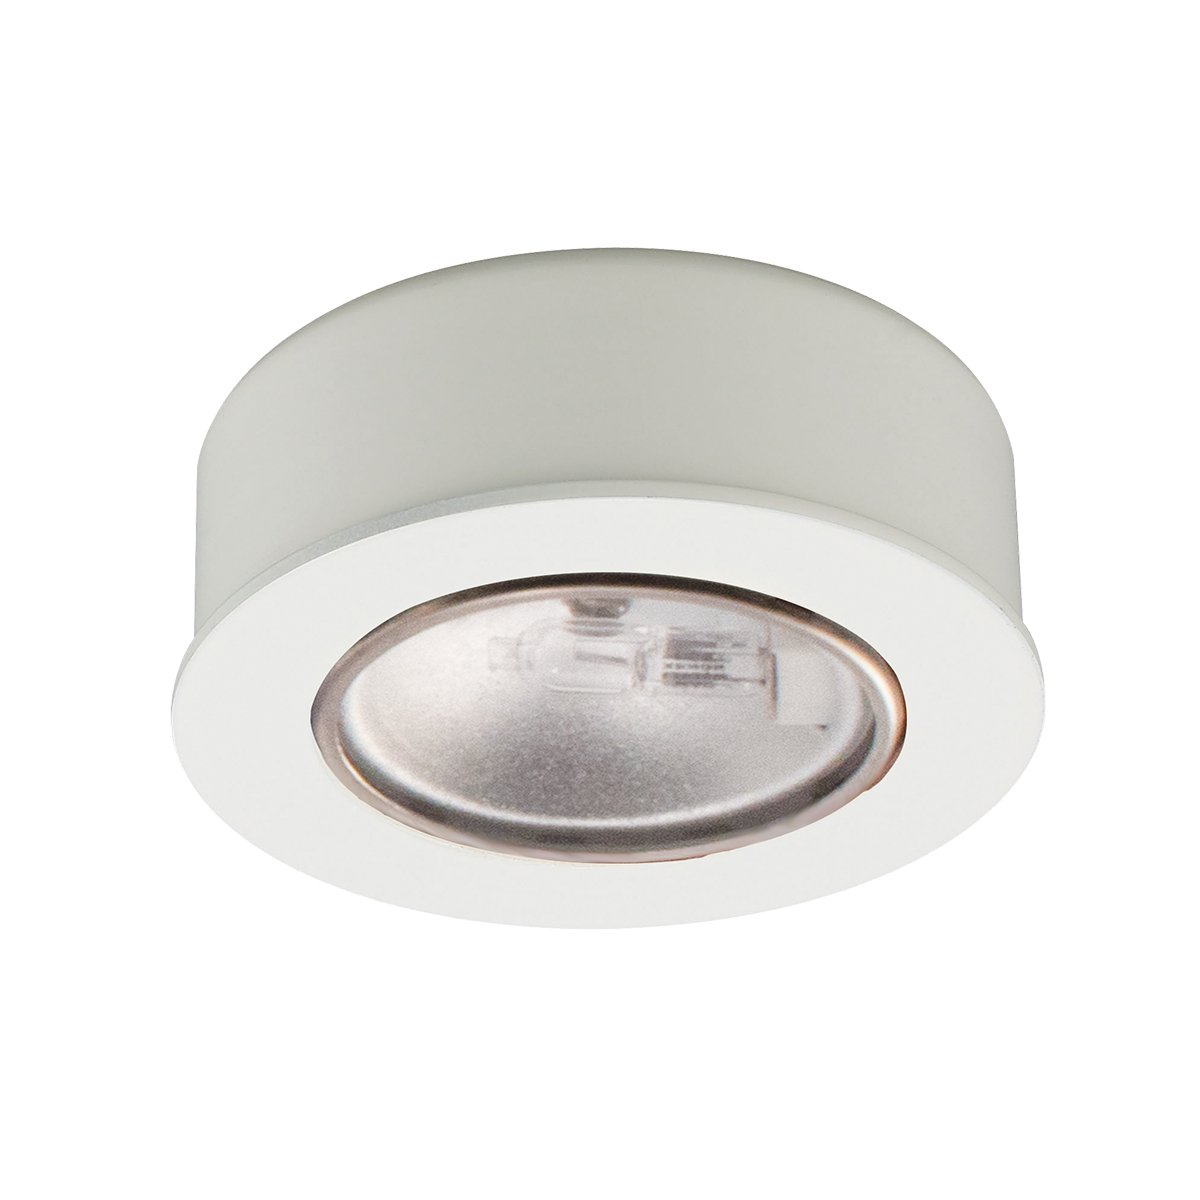 Amazon.com: WAC Lighting HR-88-WT Low Voltage Round Halogen Button ...